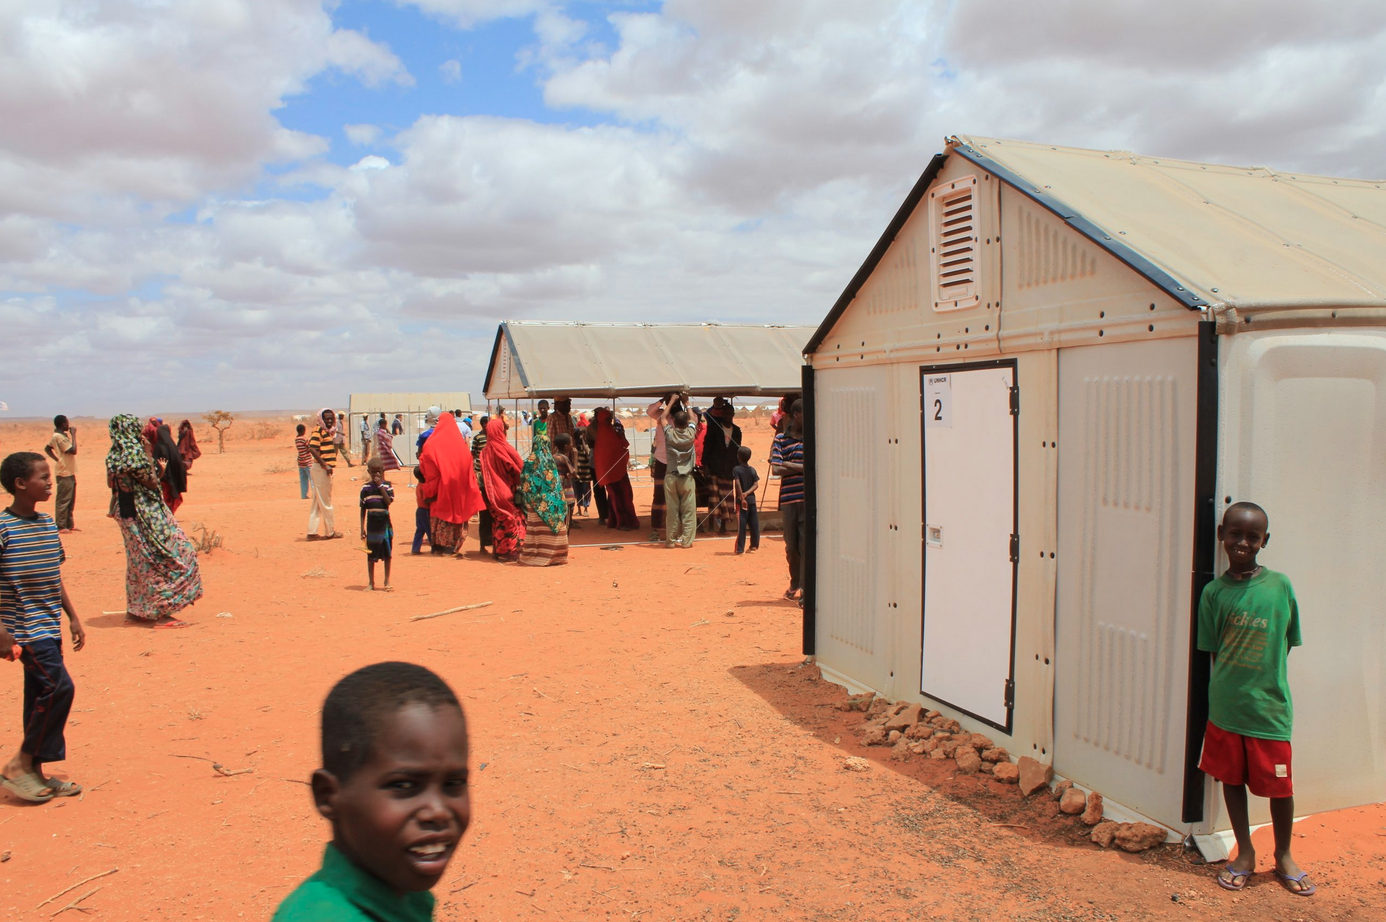 Refugee Housing Unit Selected as Finalist for World Design Impact Prize, RHU via World Design Impact